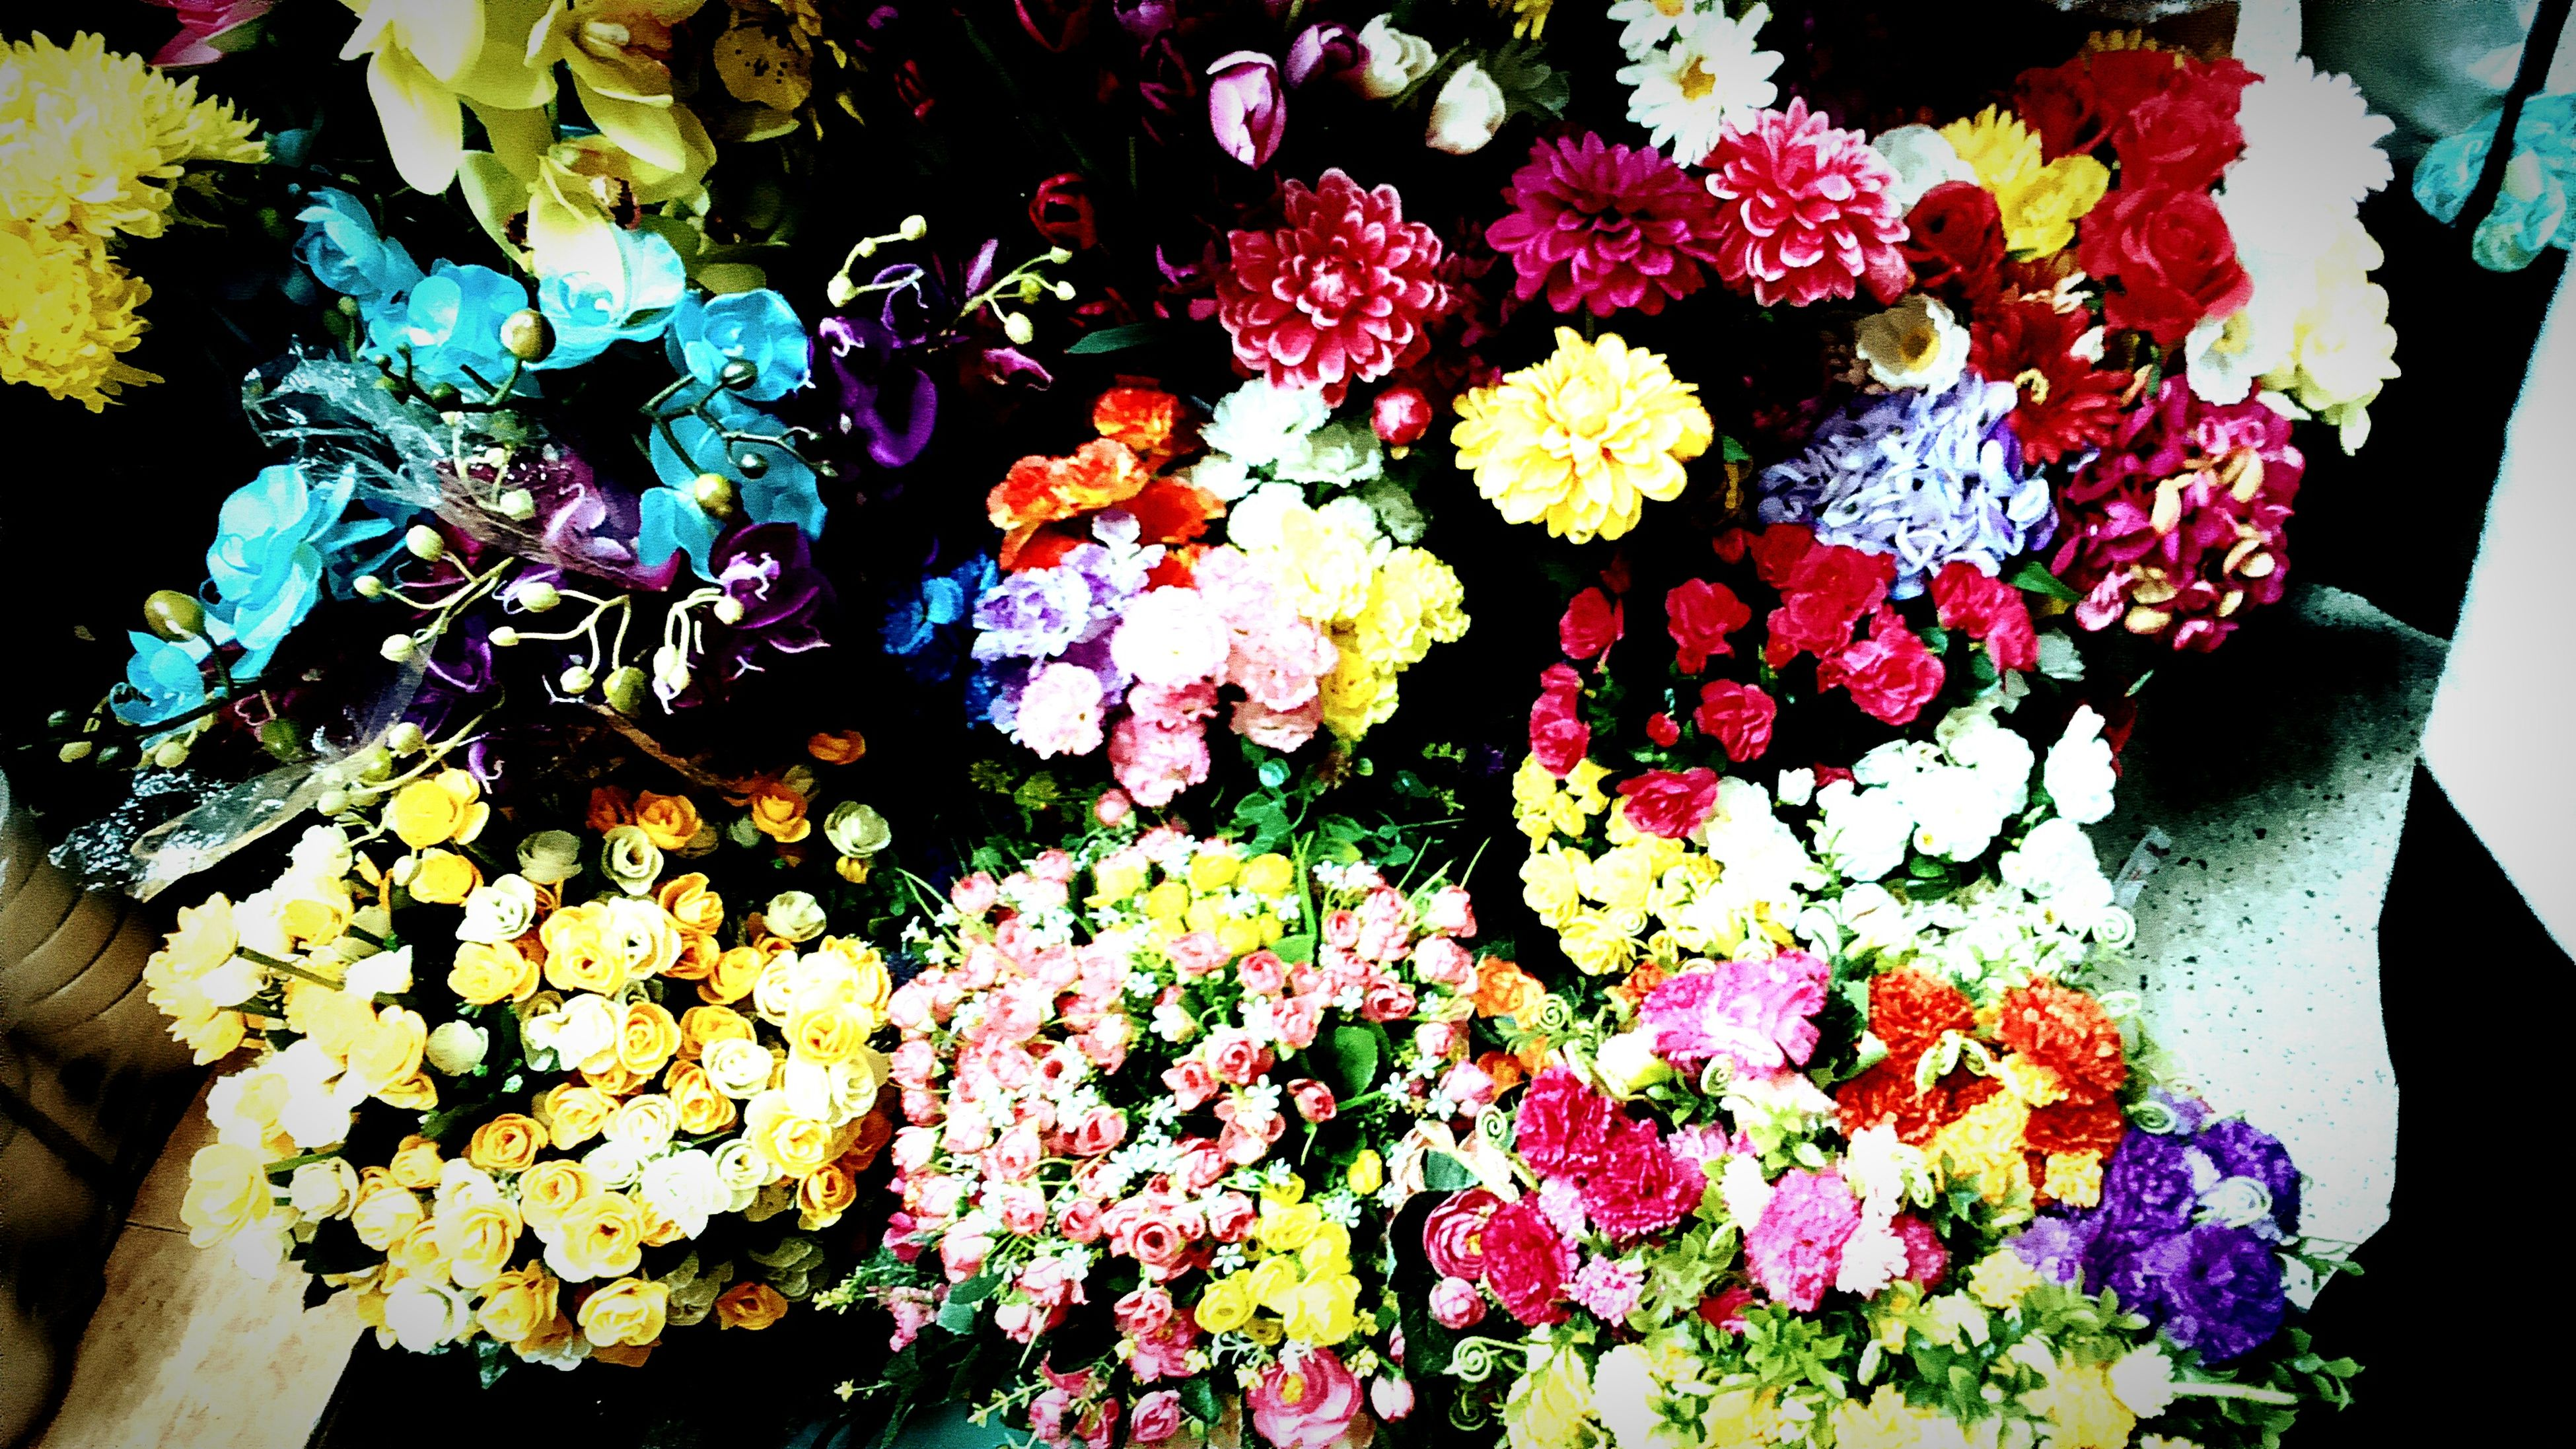 flower, petal, freshness, fragility, multi colored, growth, beauty in nature, plant, flower head, indoors, high angle view, nature, blooming, leaf, bouquet, in bloom, potted plant, close-up, bunch of flowers, blossom